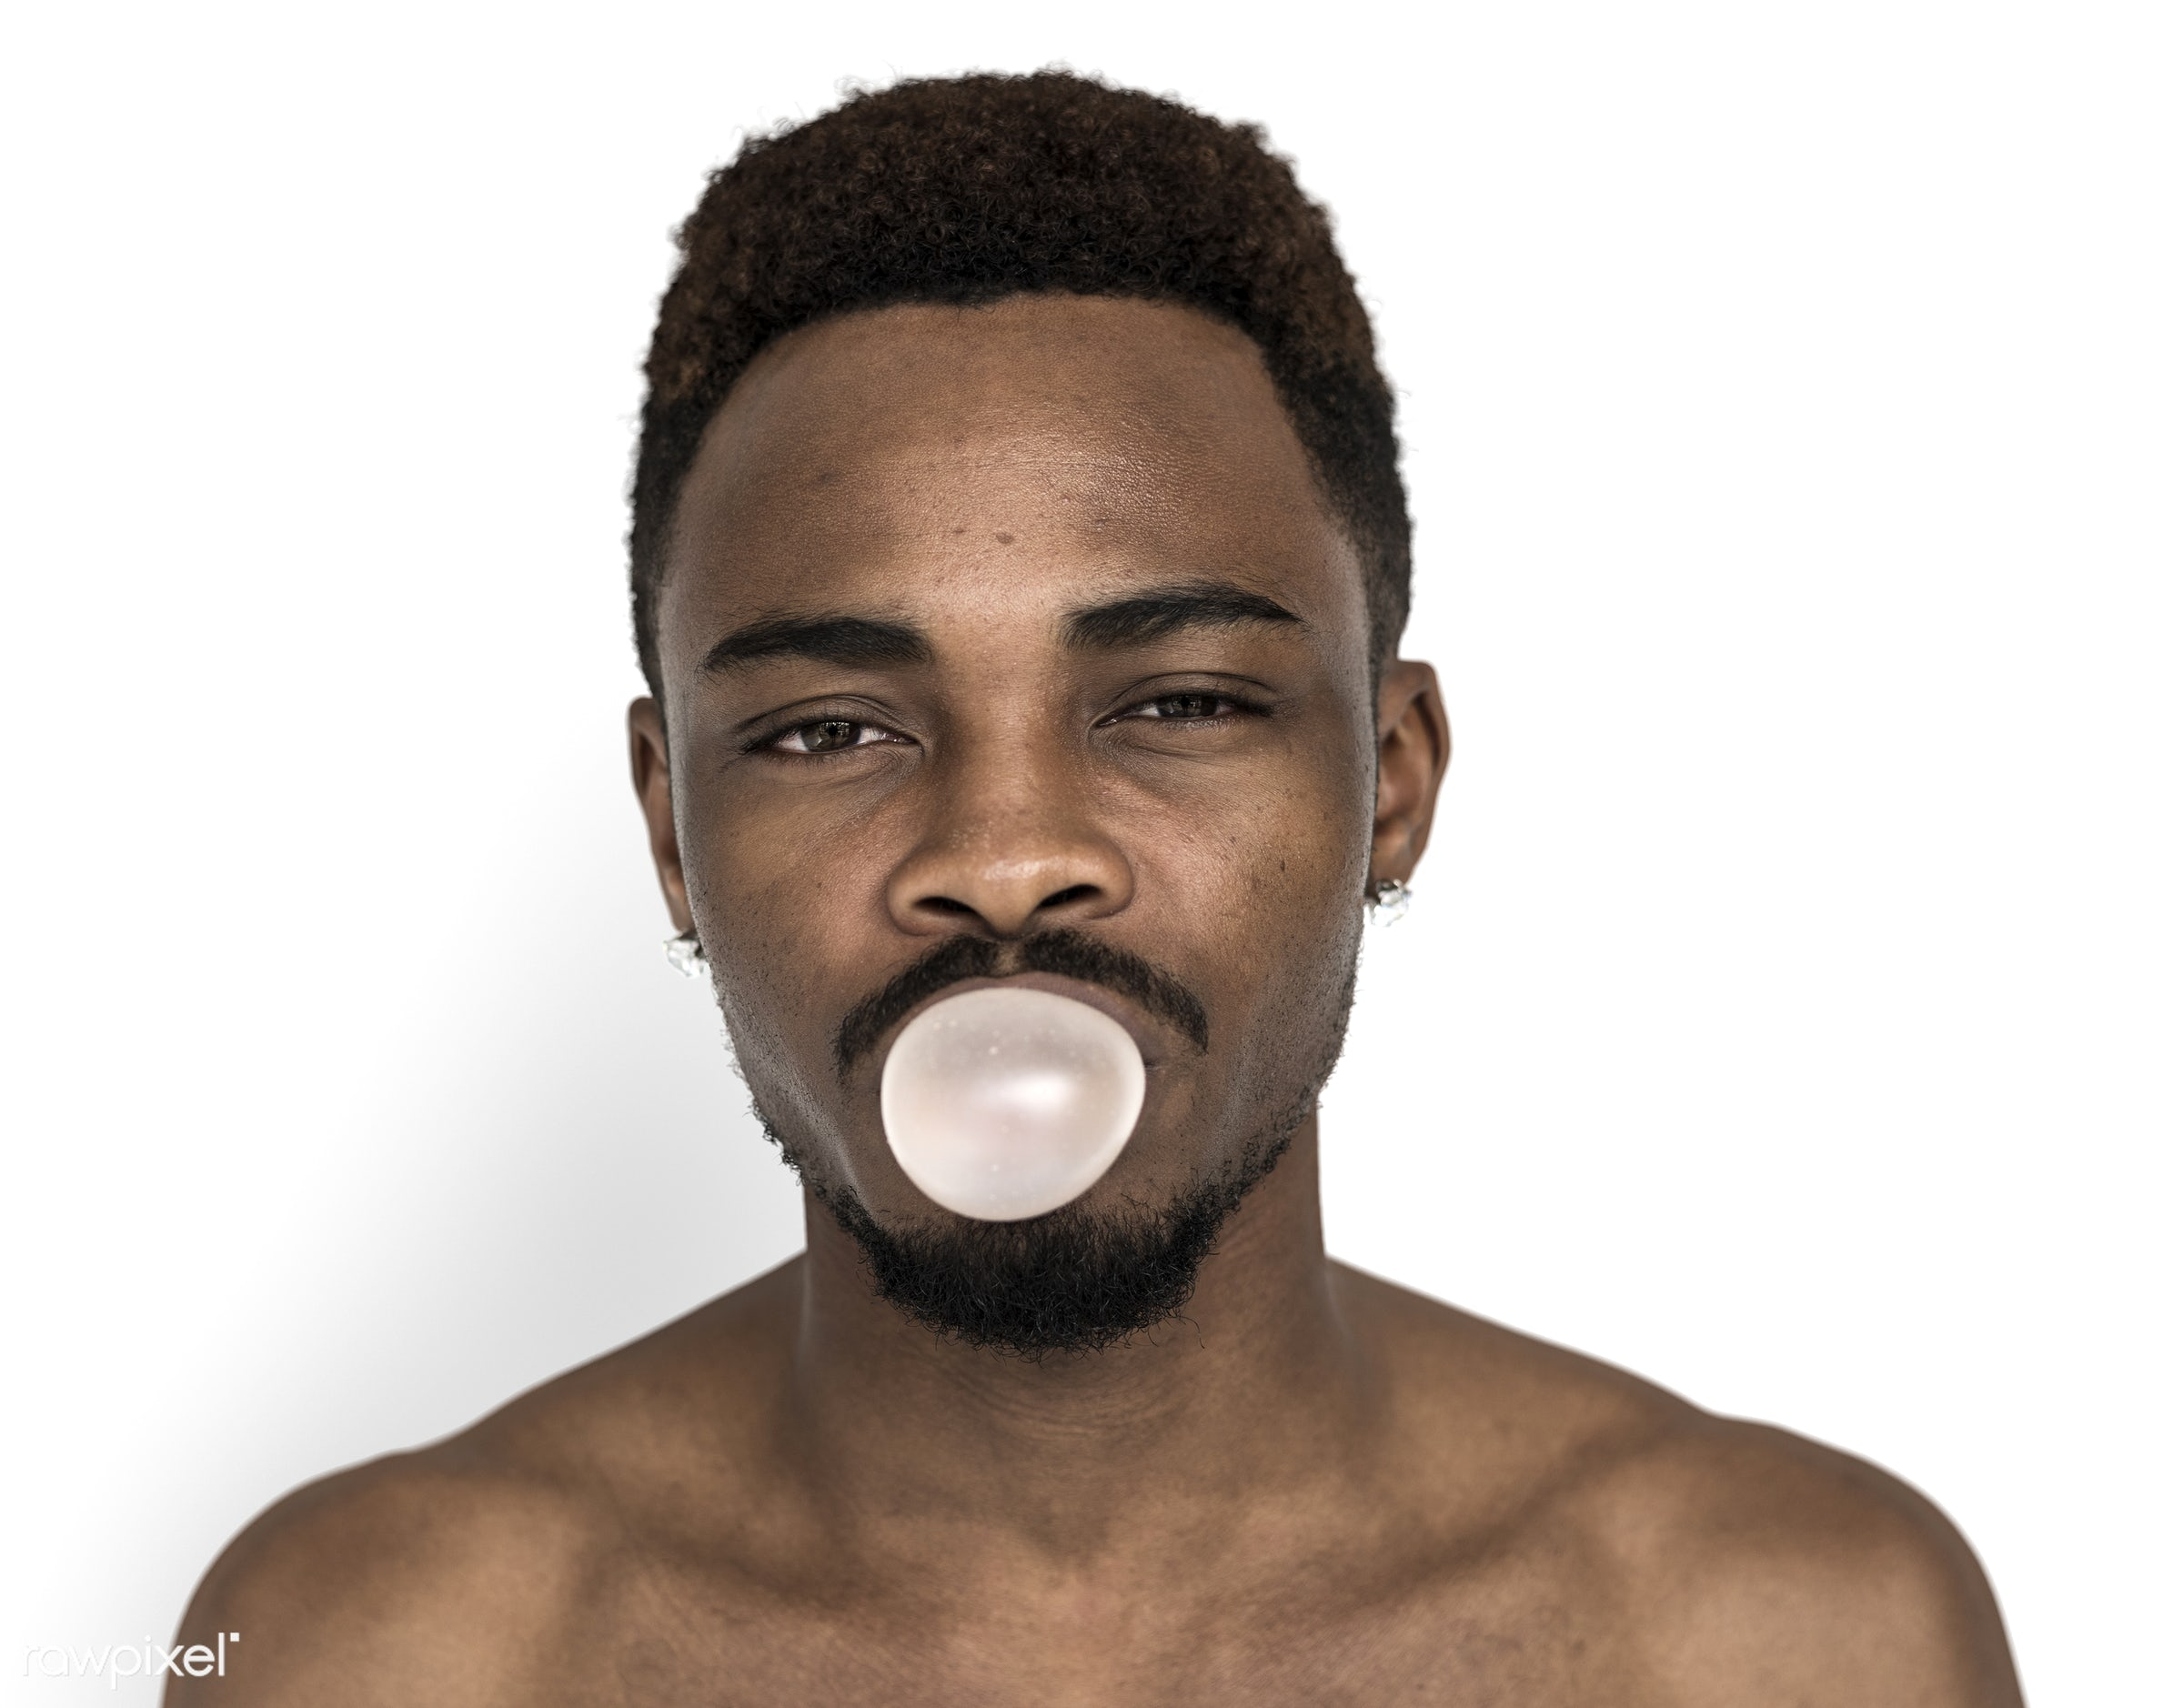 studio, expression, body, face, person, blow bubble, people, chew, face expression, gum, men, chewing gum, blow, cheerful,...